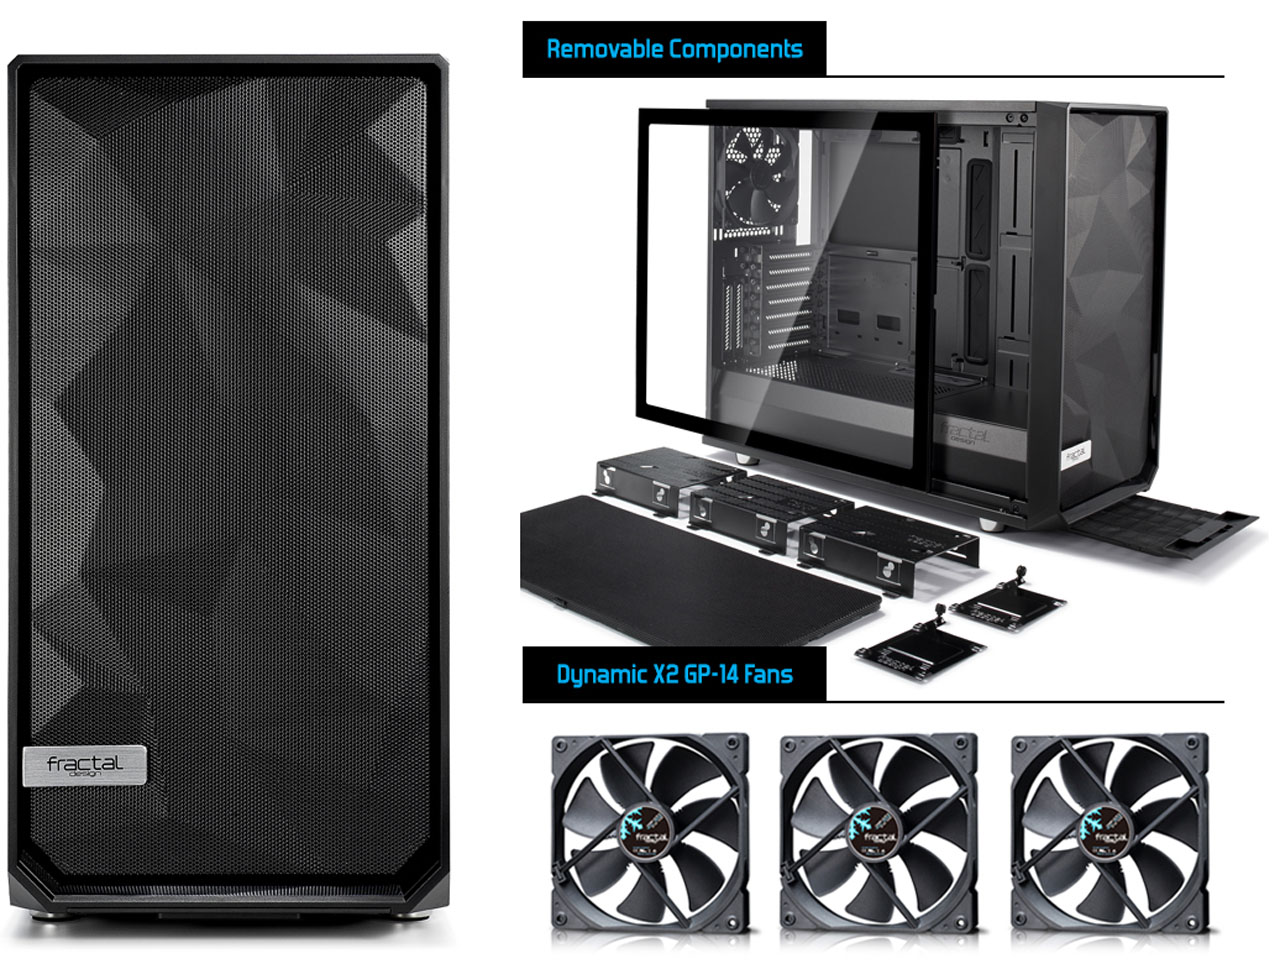 Meshify S2 Side view and disassembly diagram and three fans